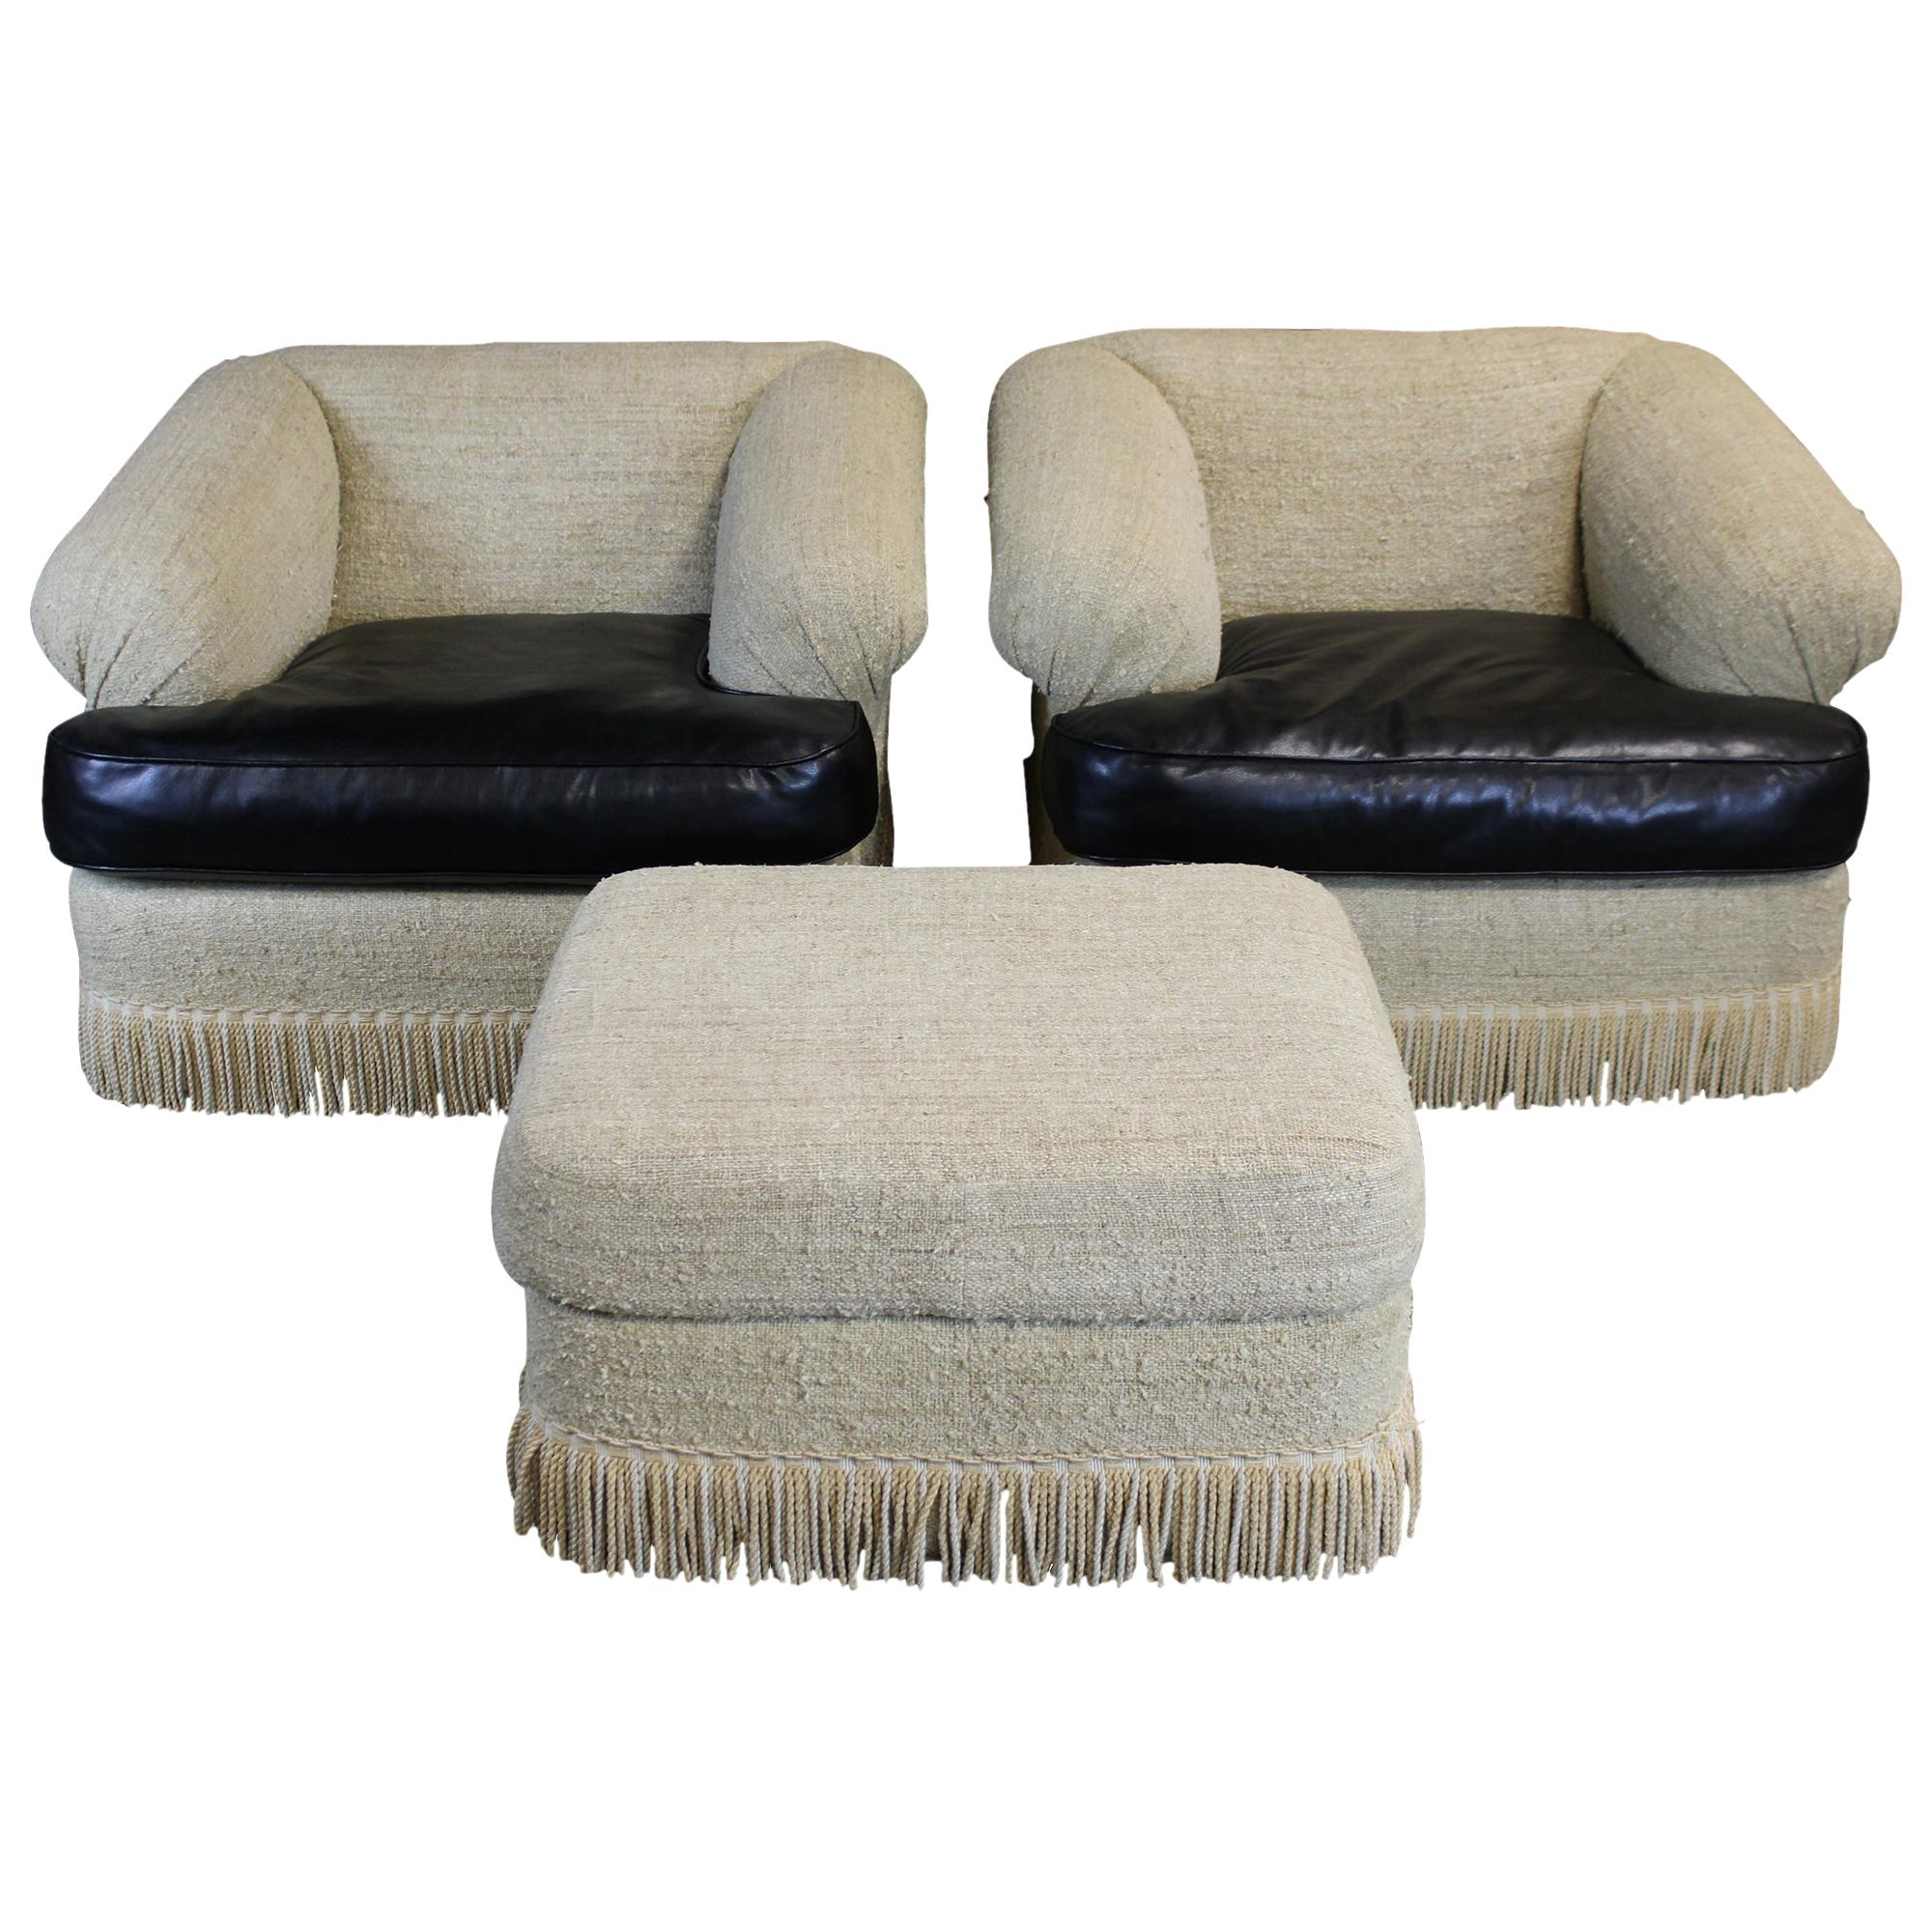 2 Original Kreiss Collection Modern Nubby Linen Fabric Club Arm Library Chairs